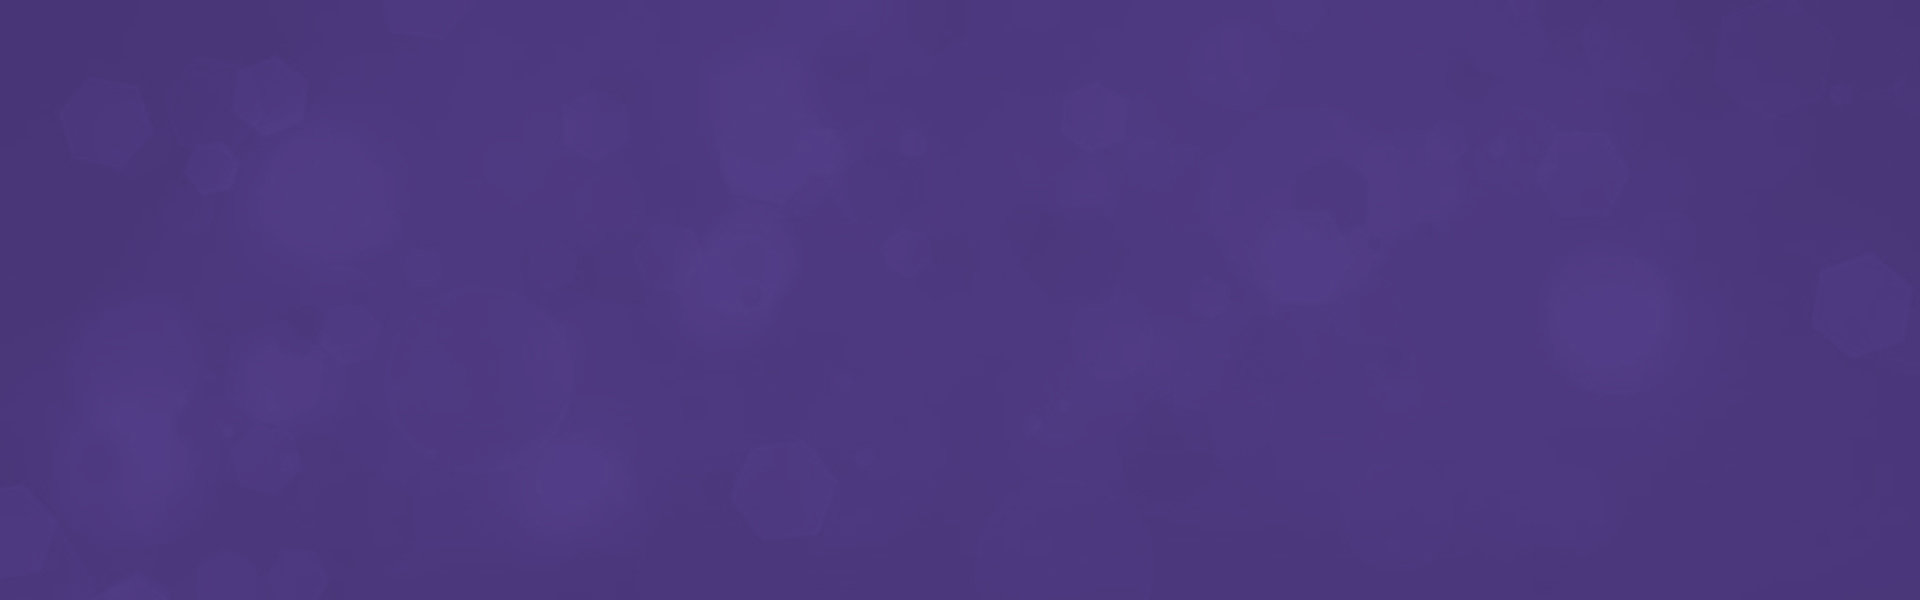 Purple Background Graphic